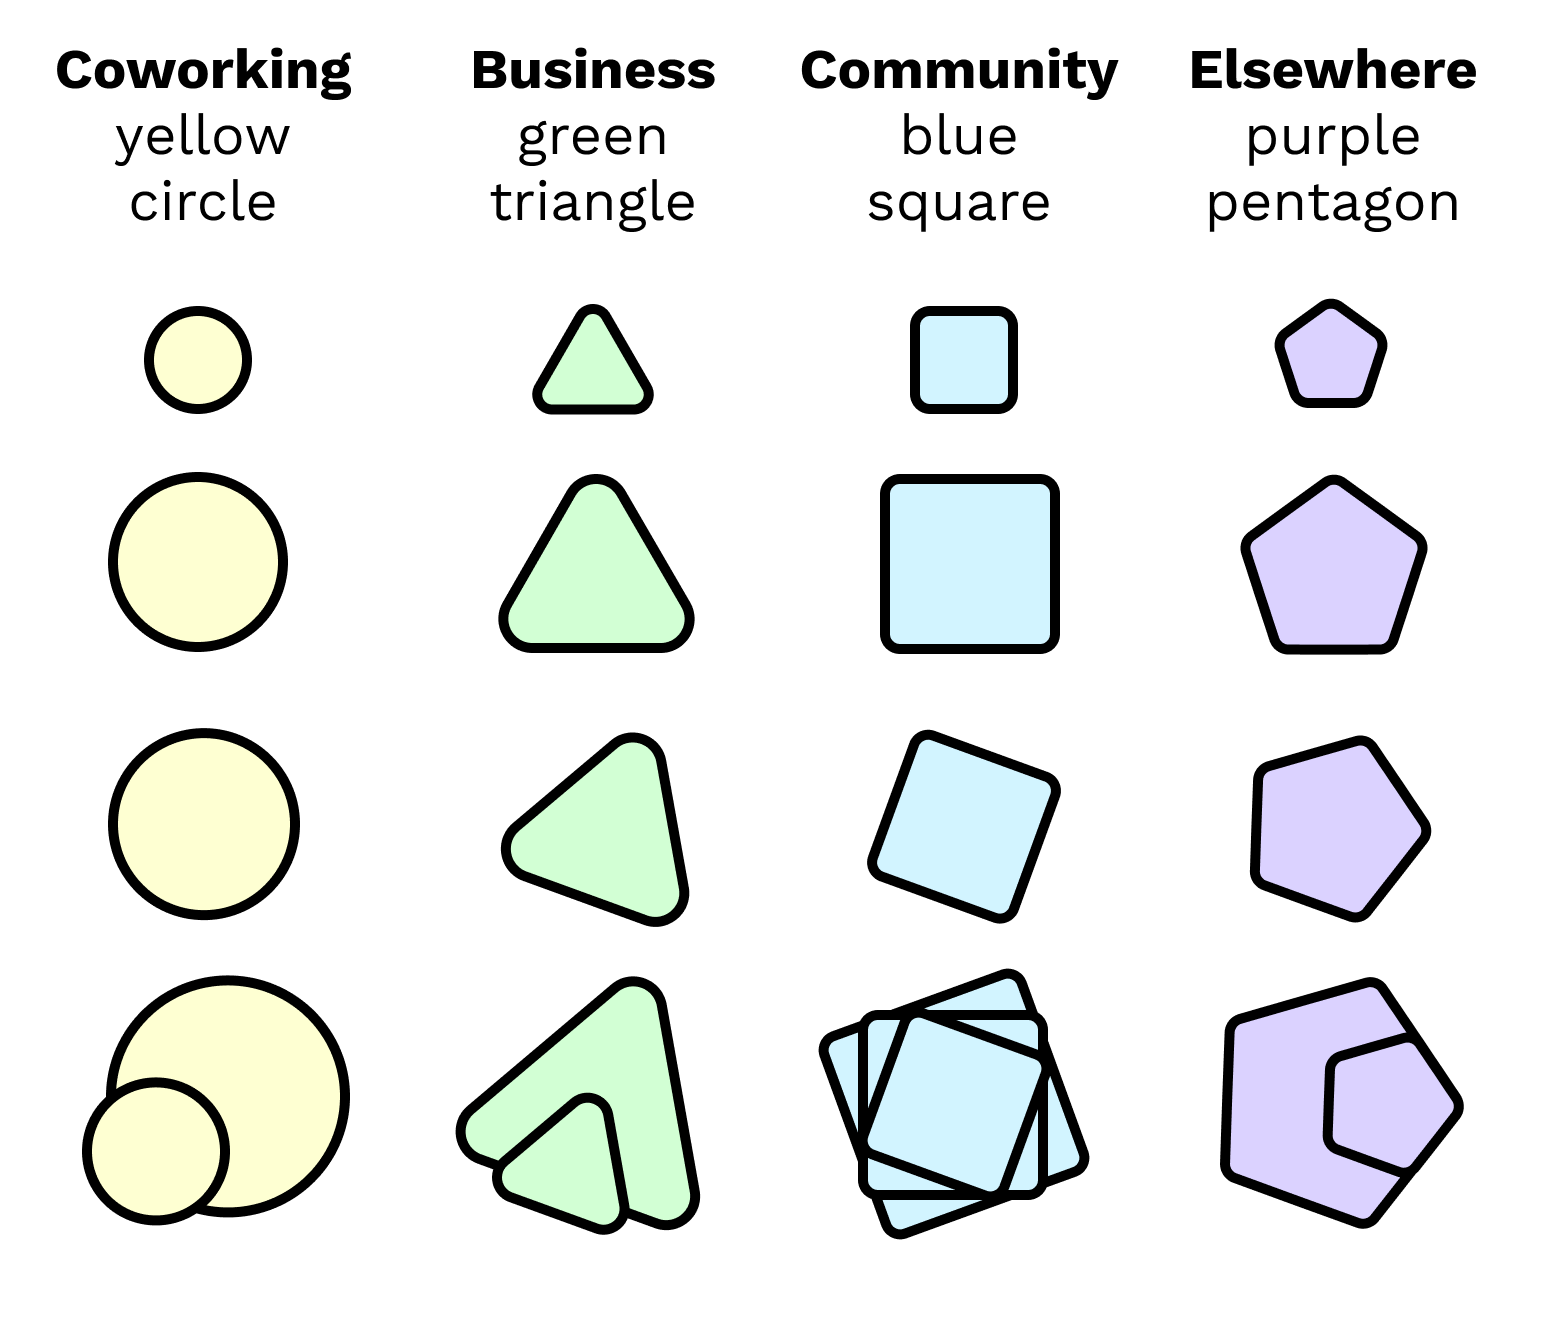 coworking is a yellow circle, business is a green triangle, community is a blue square, and elsewhere is a purple pentagon